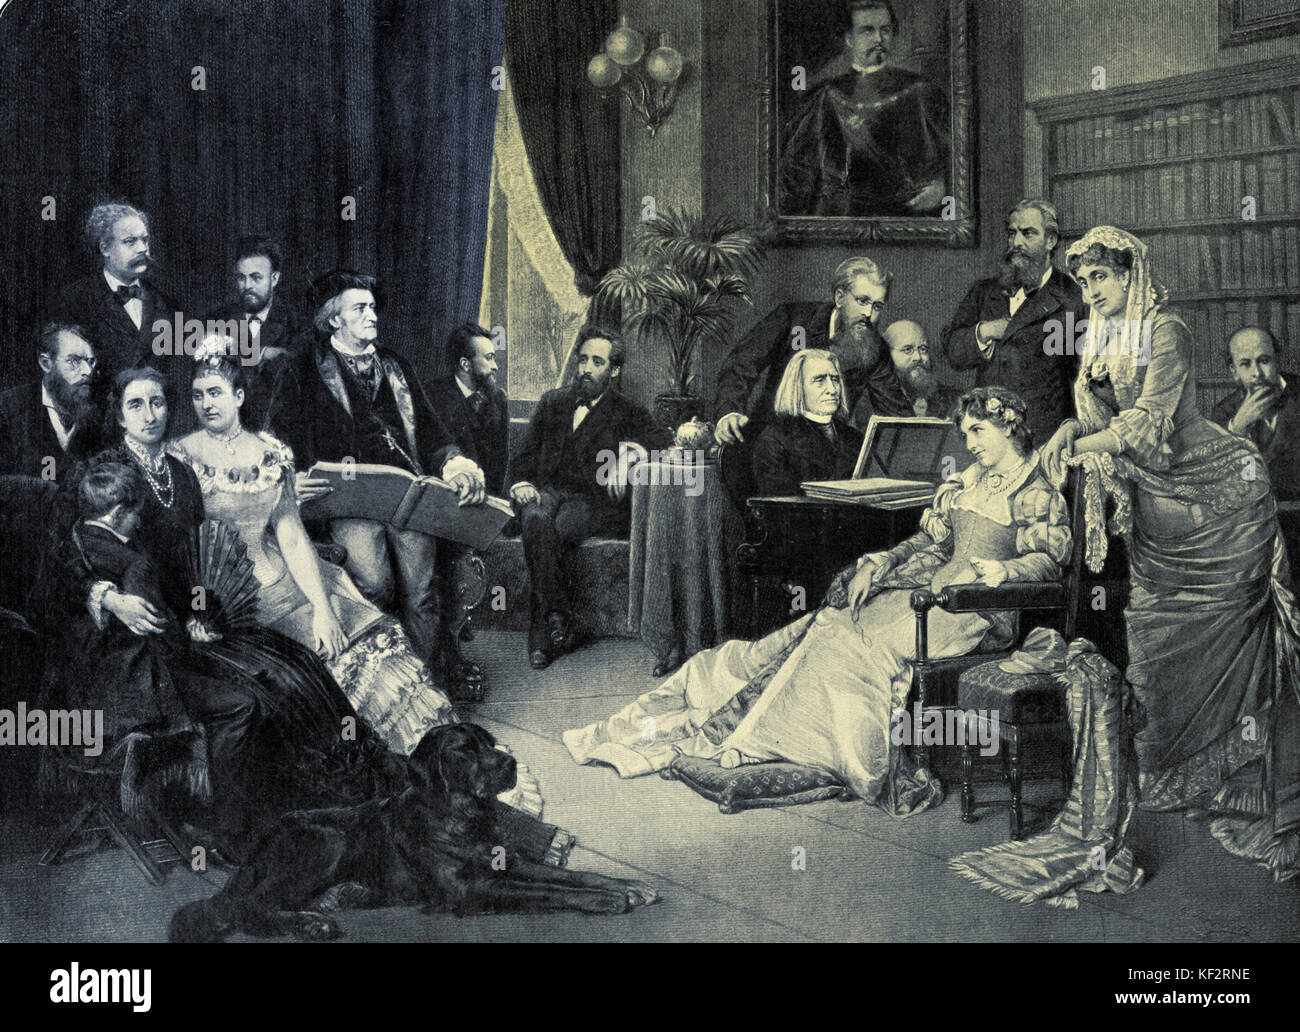 Richard Wagner in Bayreuth with his circle of friends at House Wahnfried.  From left to right: F.V. Lenbach, Siegfried Stock Photo